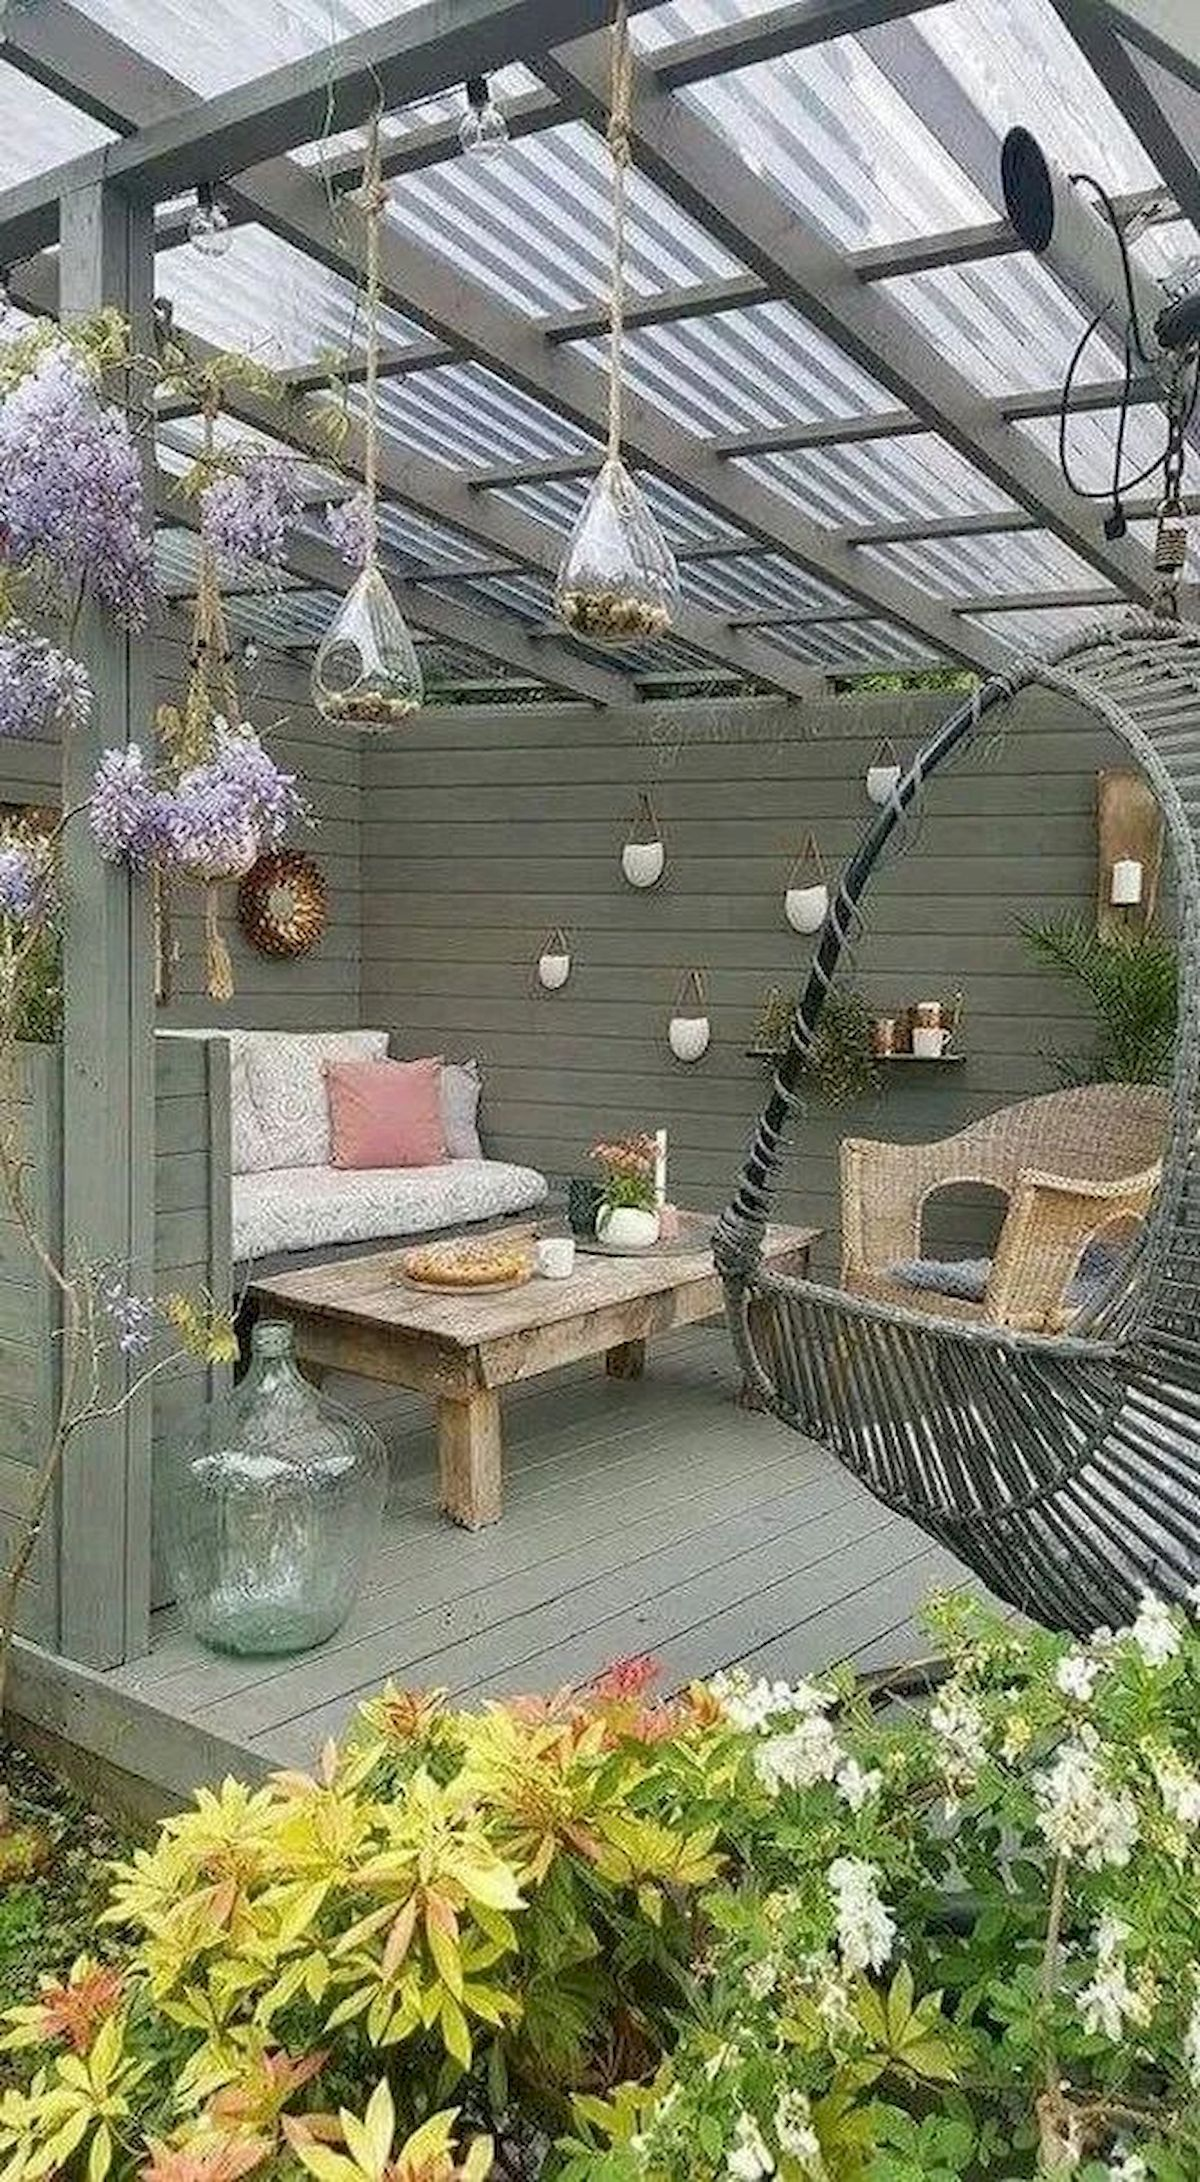 50 Awesome Modern Backyard Garden Design Ideas With Hanging Plants (13)